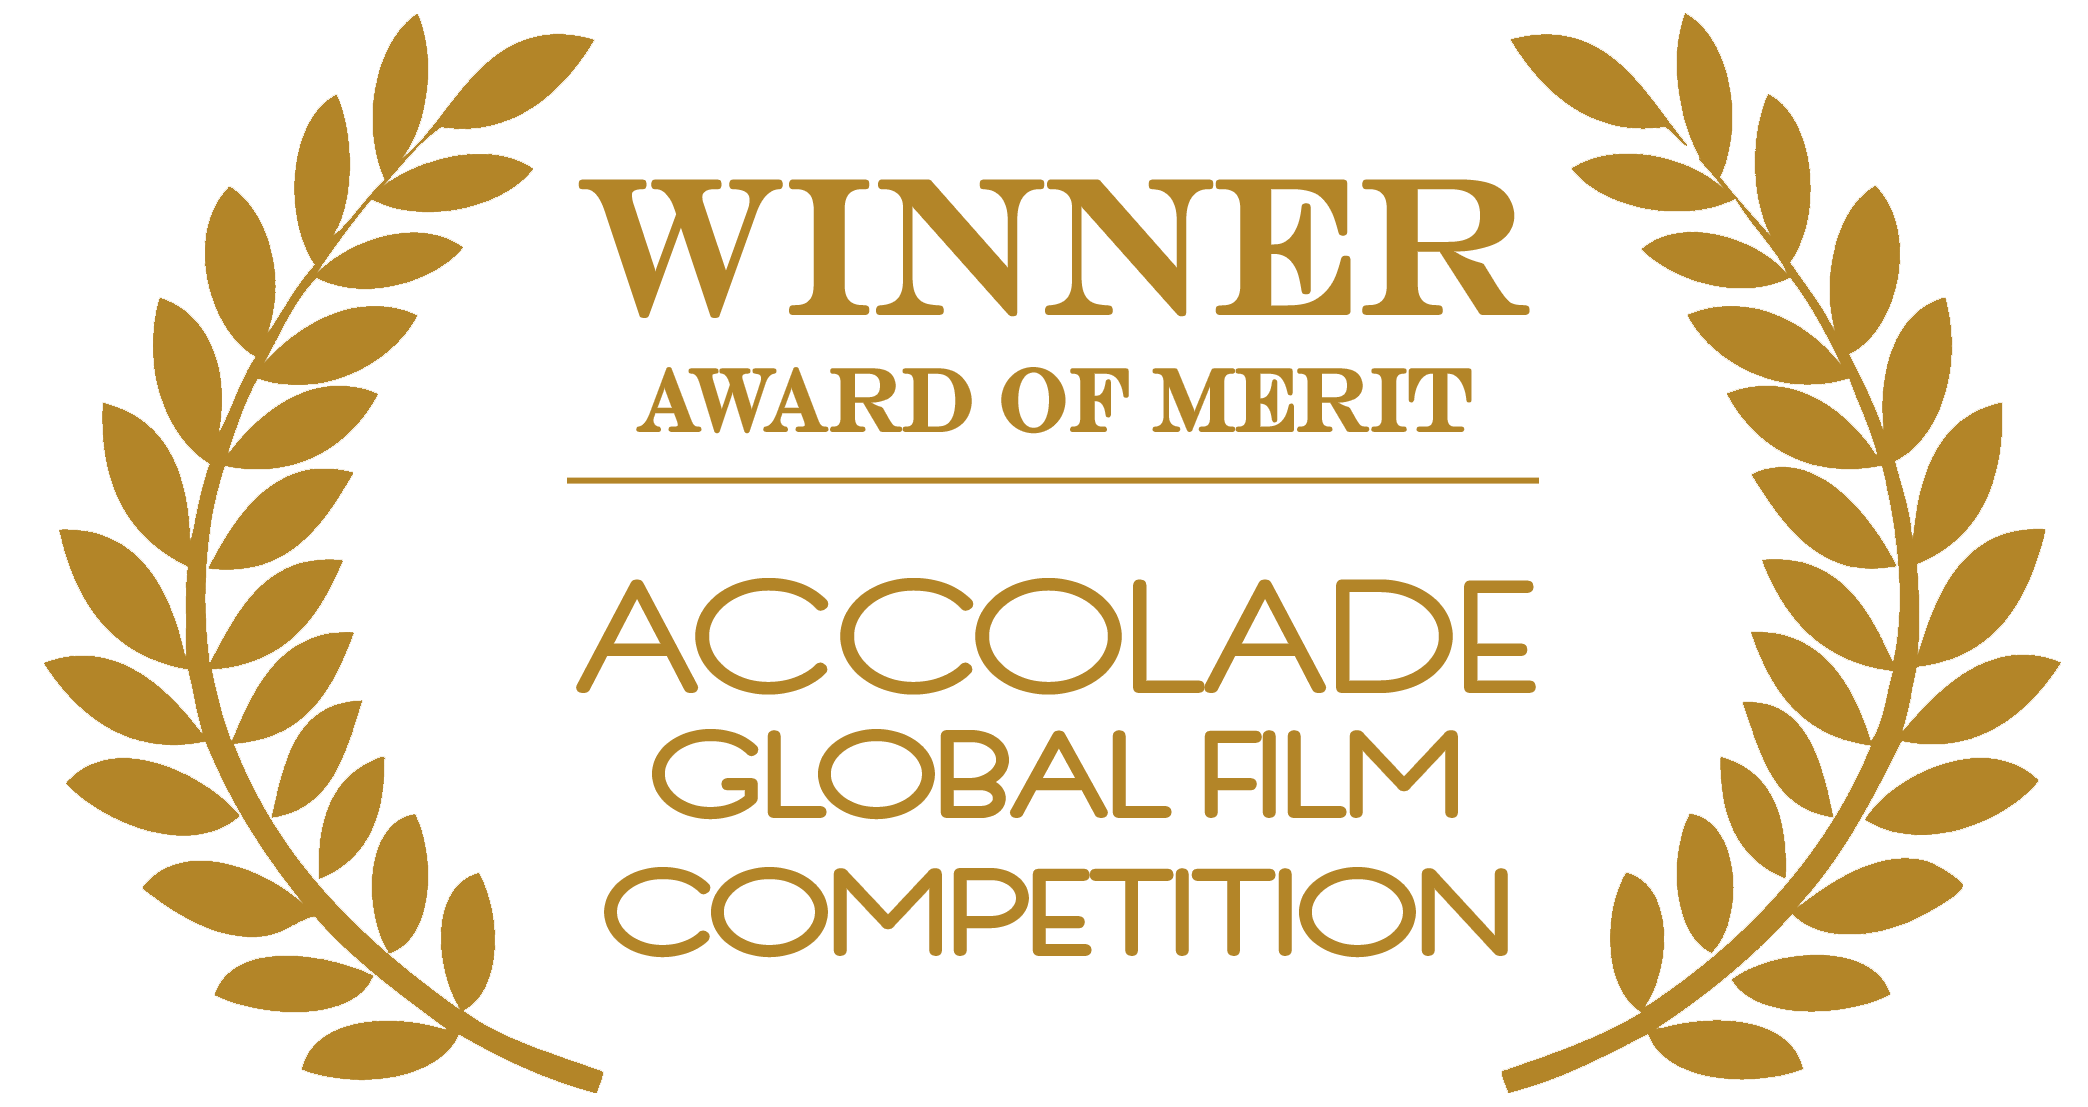 Accolade-MERIT-Words-Gold.png